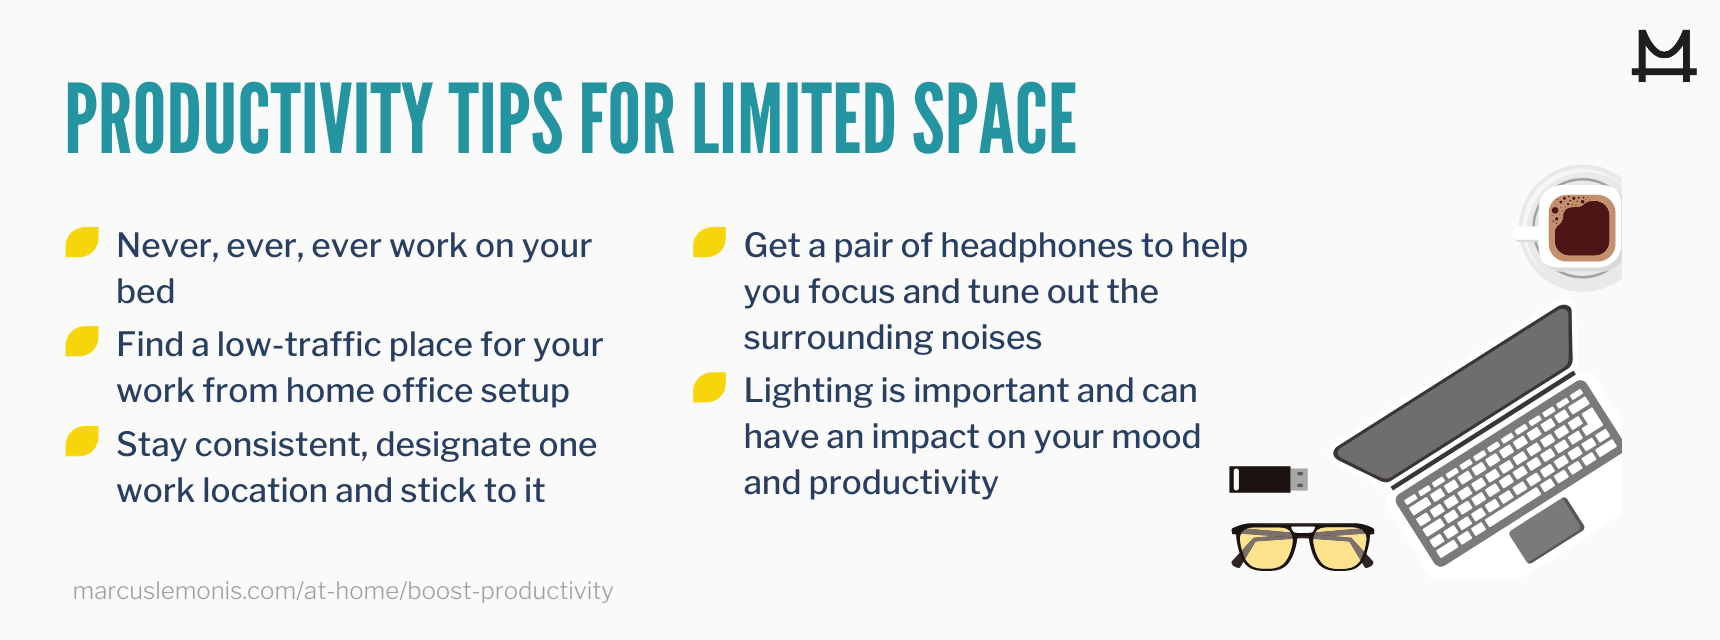 List of tips to improve productivity in a small space